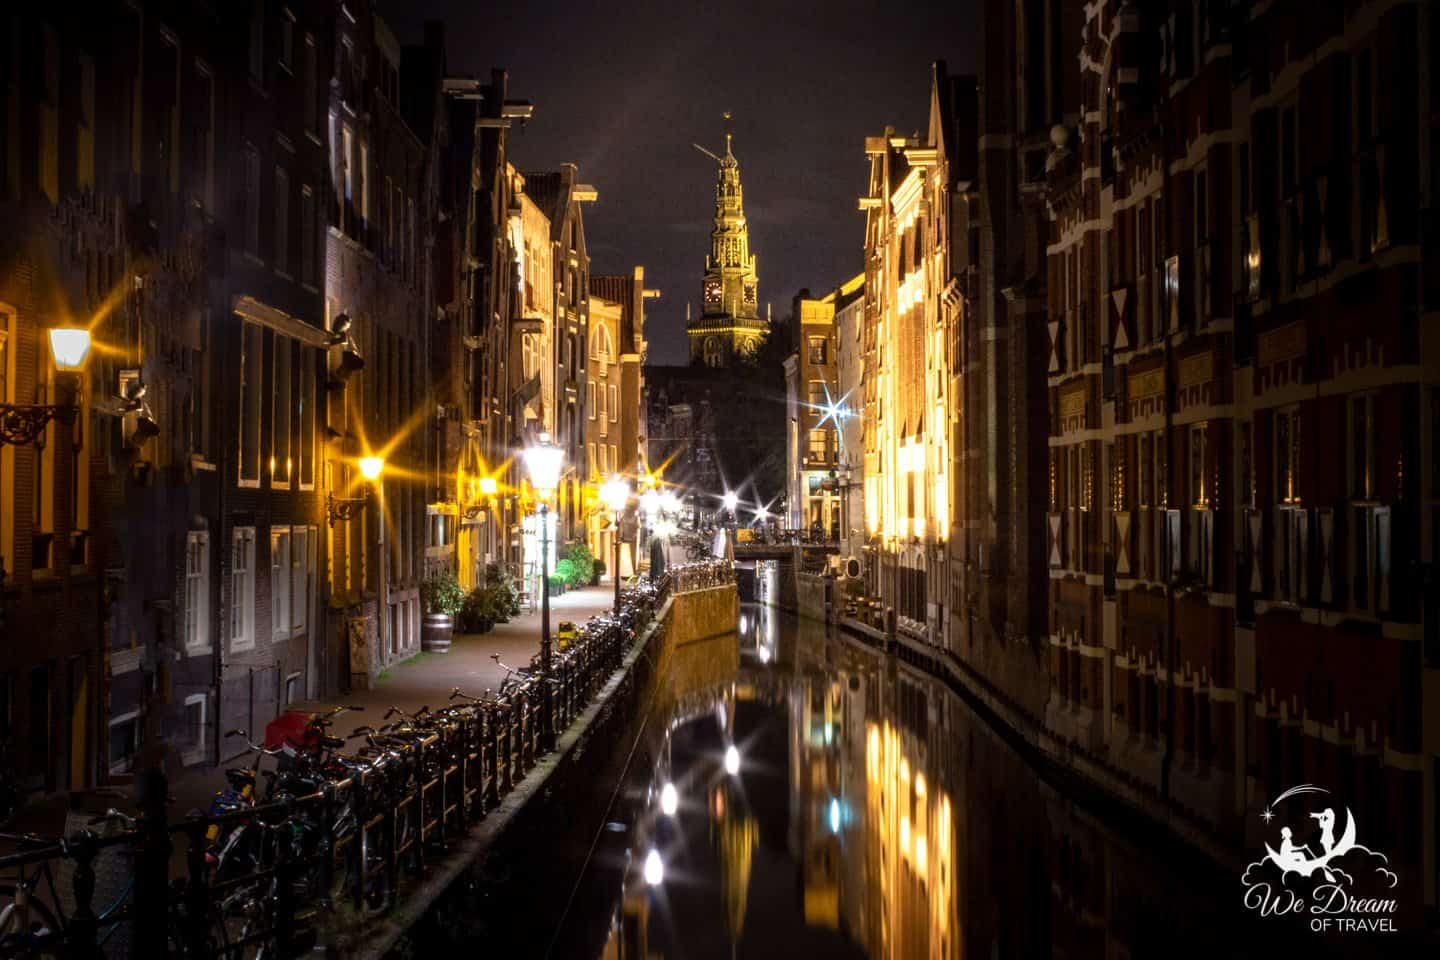 The night life in Amsterdam can be rambunctious, or serene.